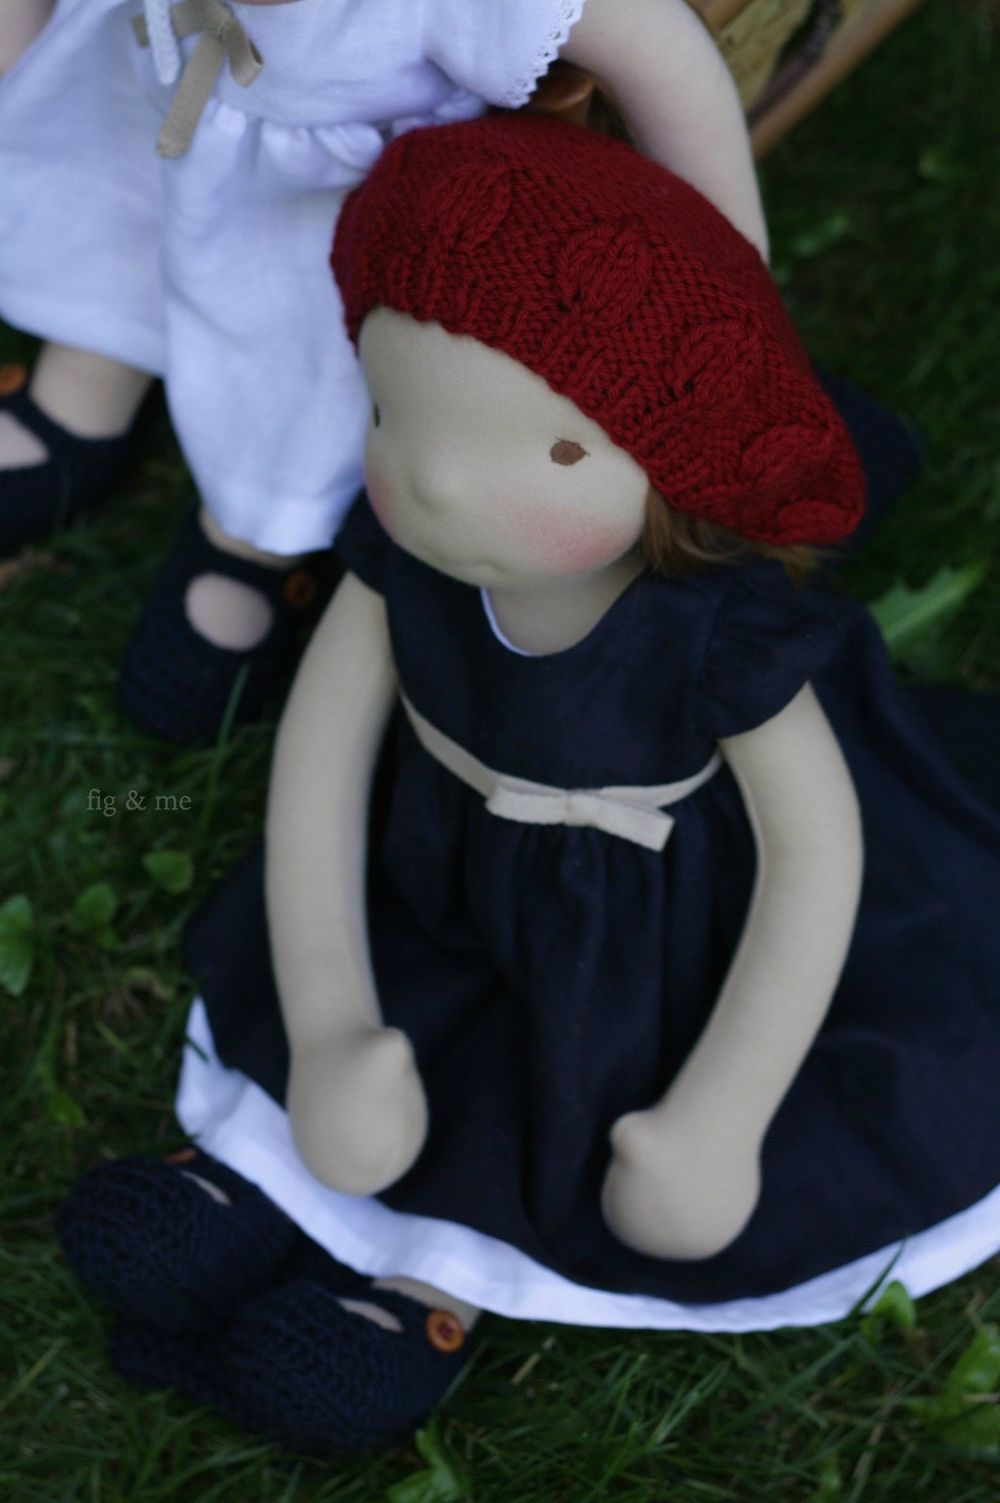 Miss Gracie, a natural custom cloth doll by Fig and me